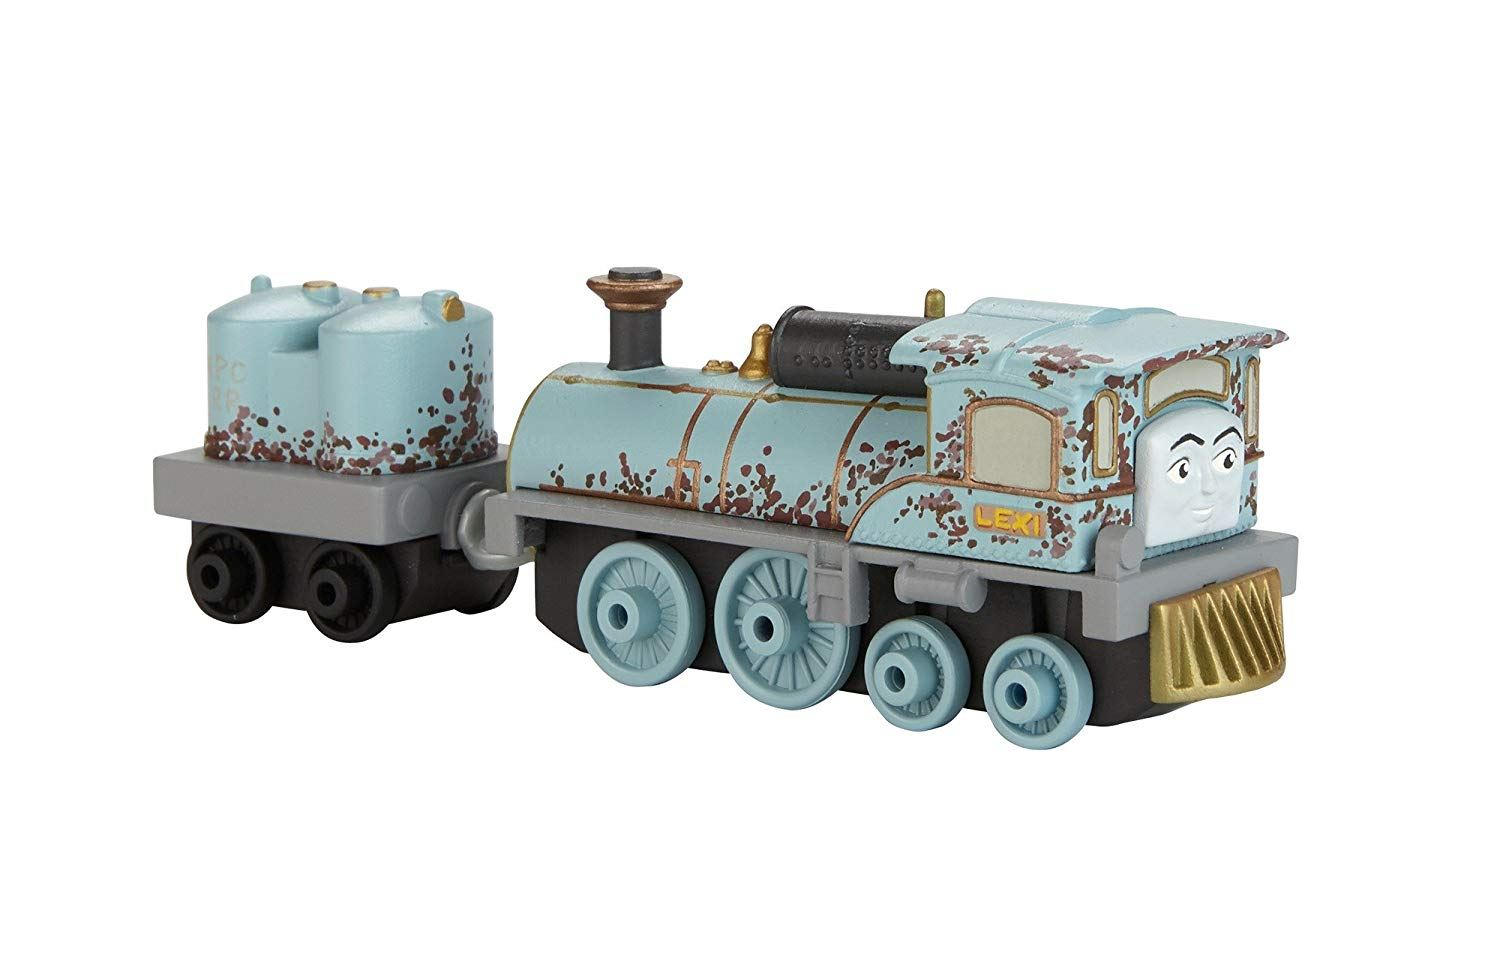 Thomas-amp-Friends-Adventures-Ferdinand-lexi-Shane-Dash-Huge-Bill-Trains Indexbild 31